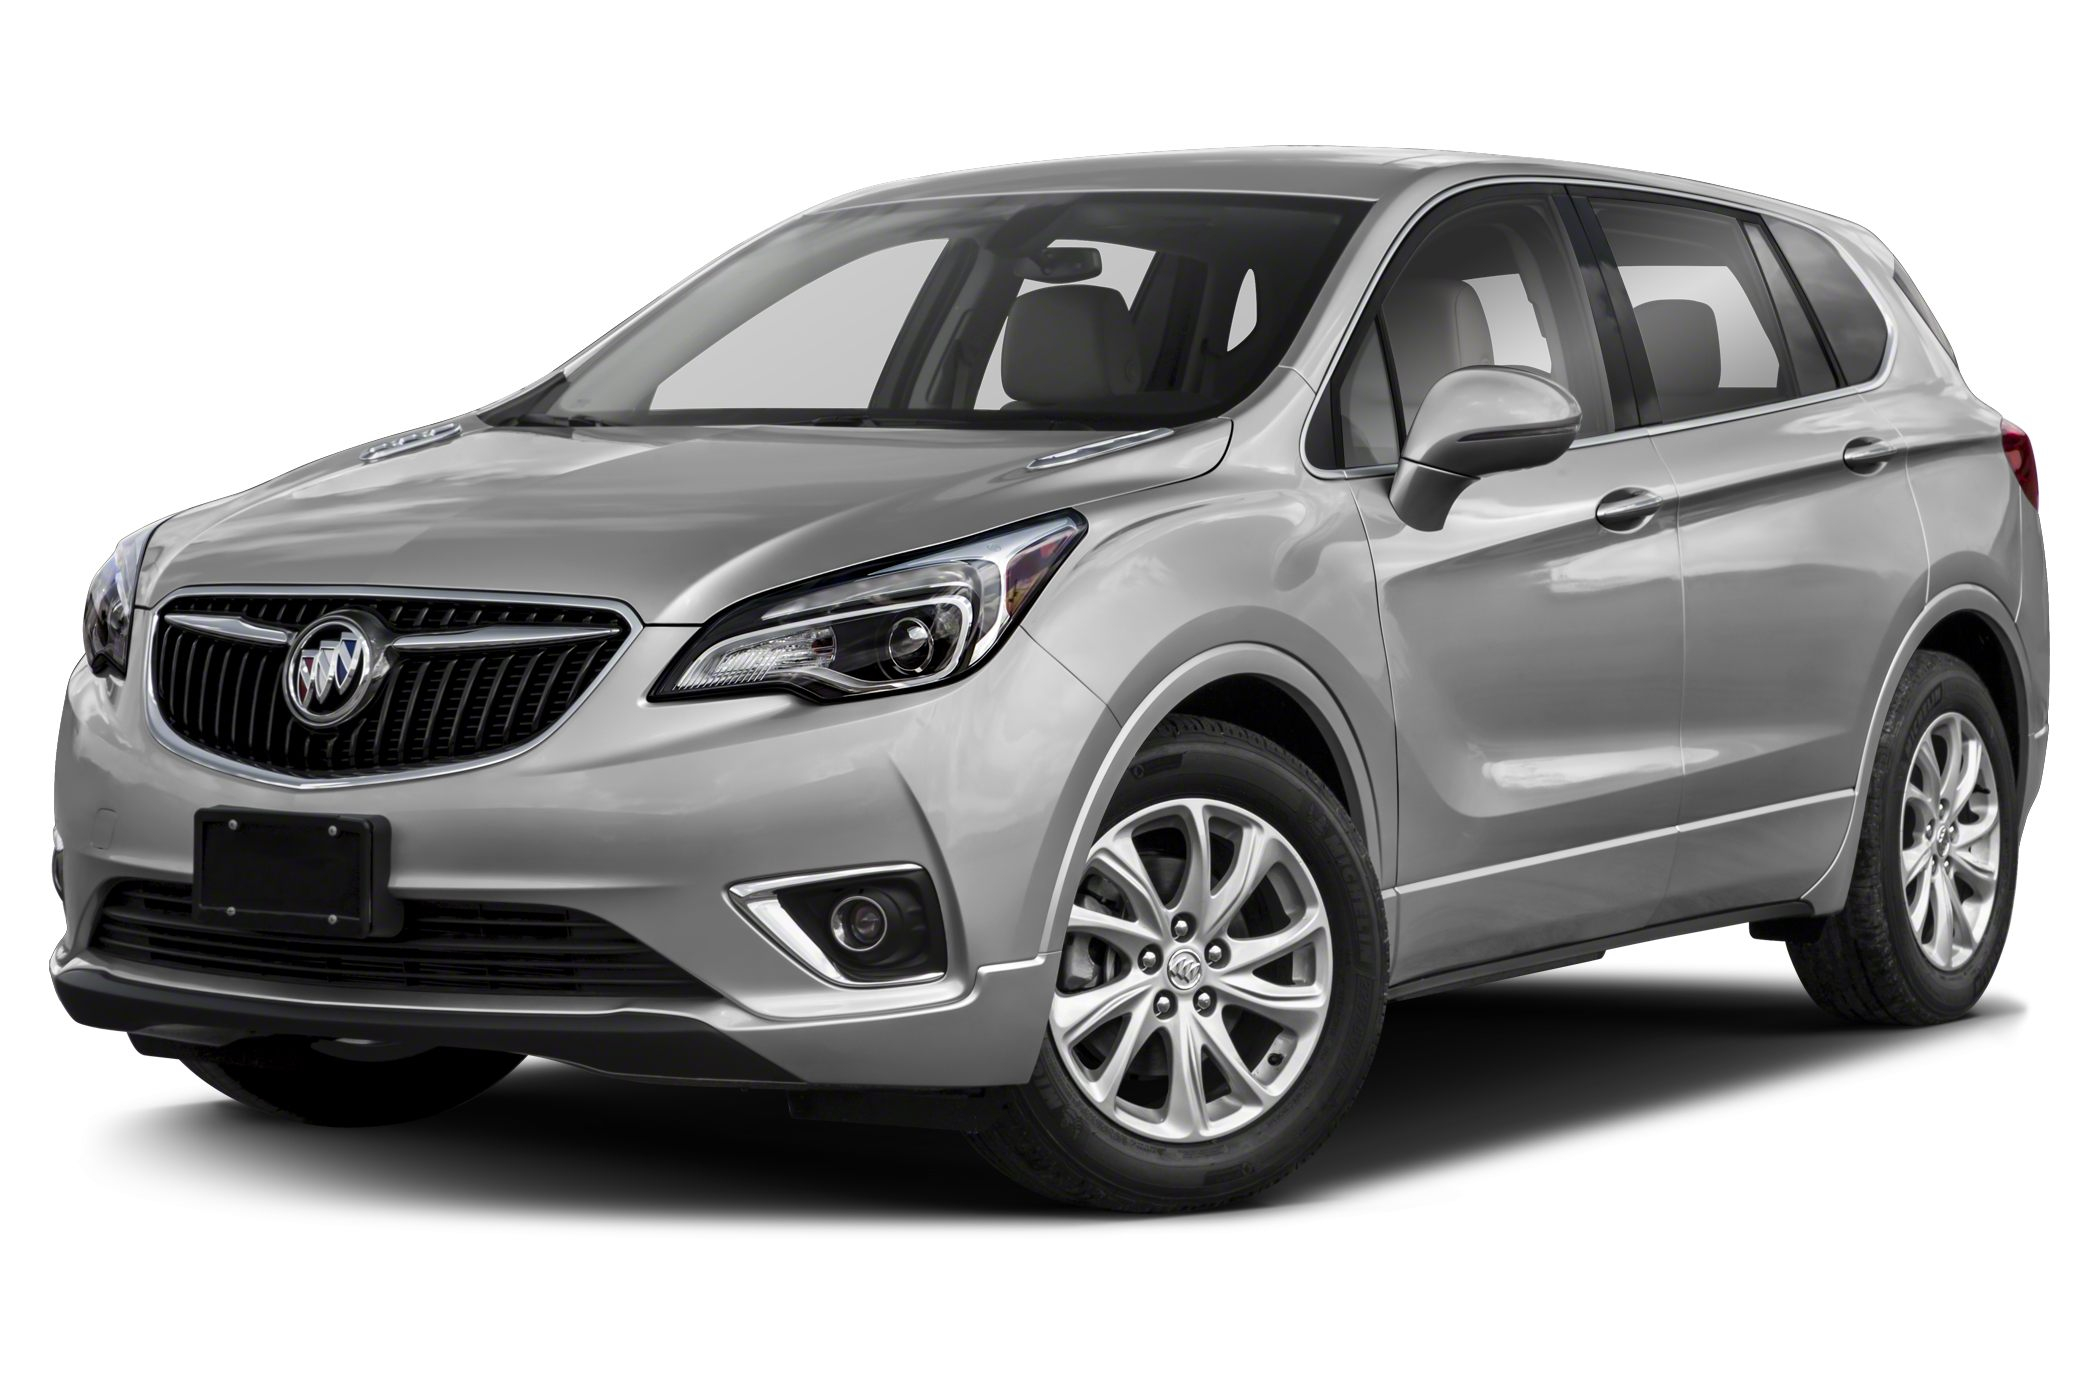 2020 Buick Envision Specs And Prices New 2021 Buick Envision Lease, Trim Levels, Msrp